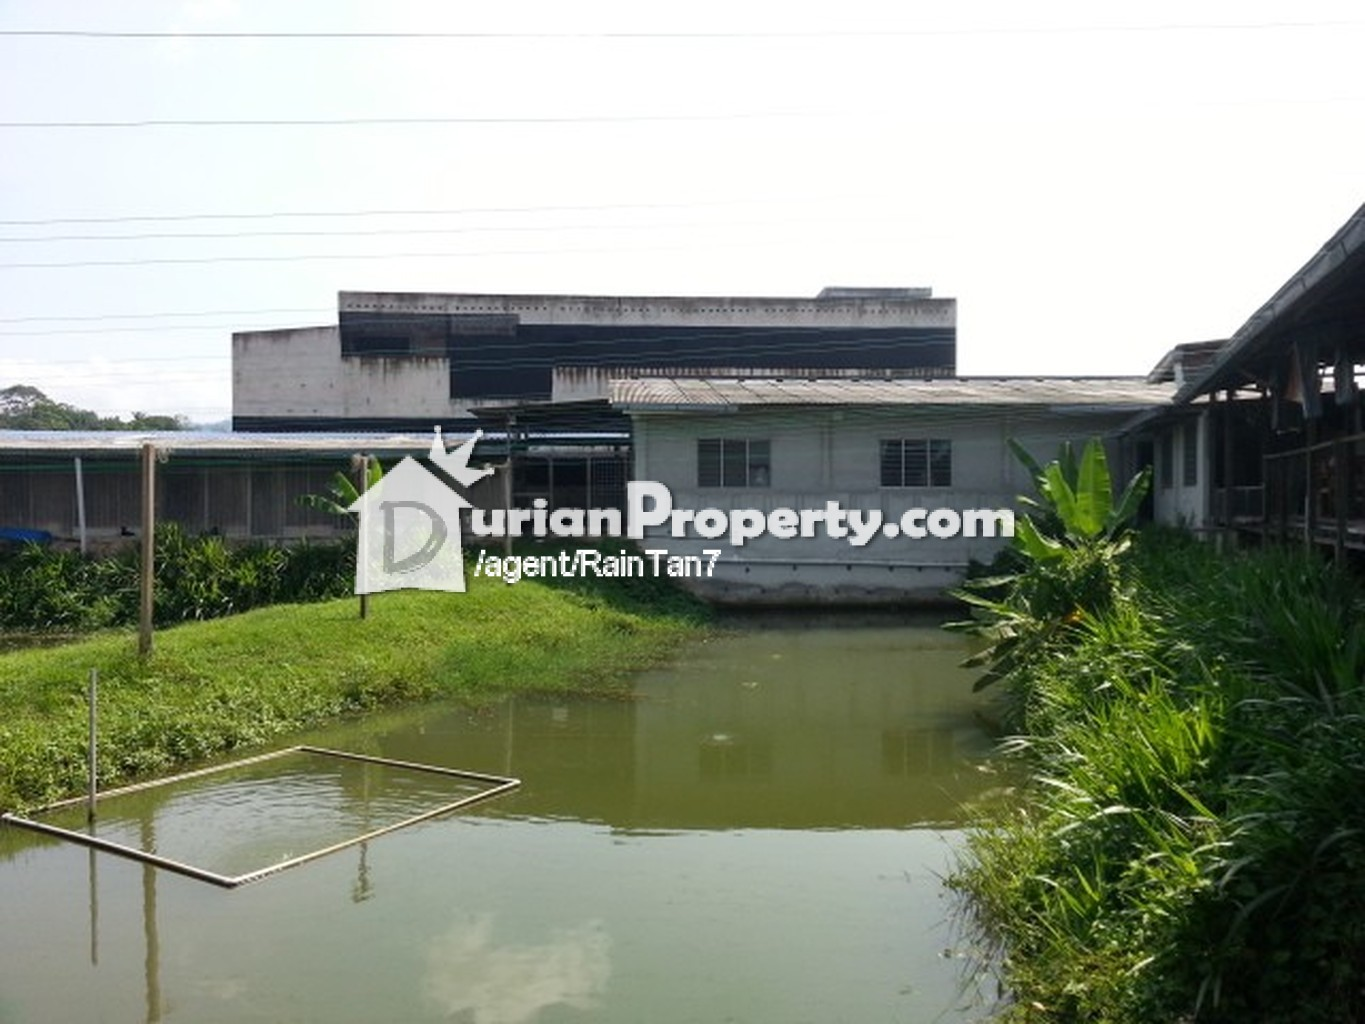 Agriculture land for sale at mantin seremban for rm 1 750 000 by rain